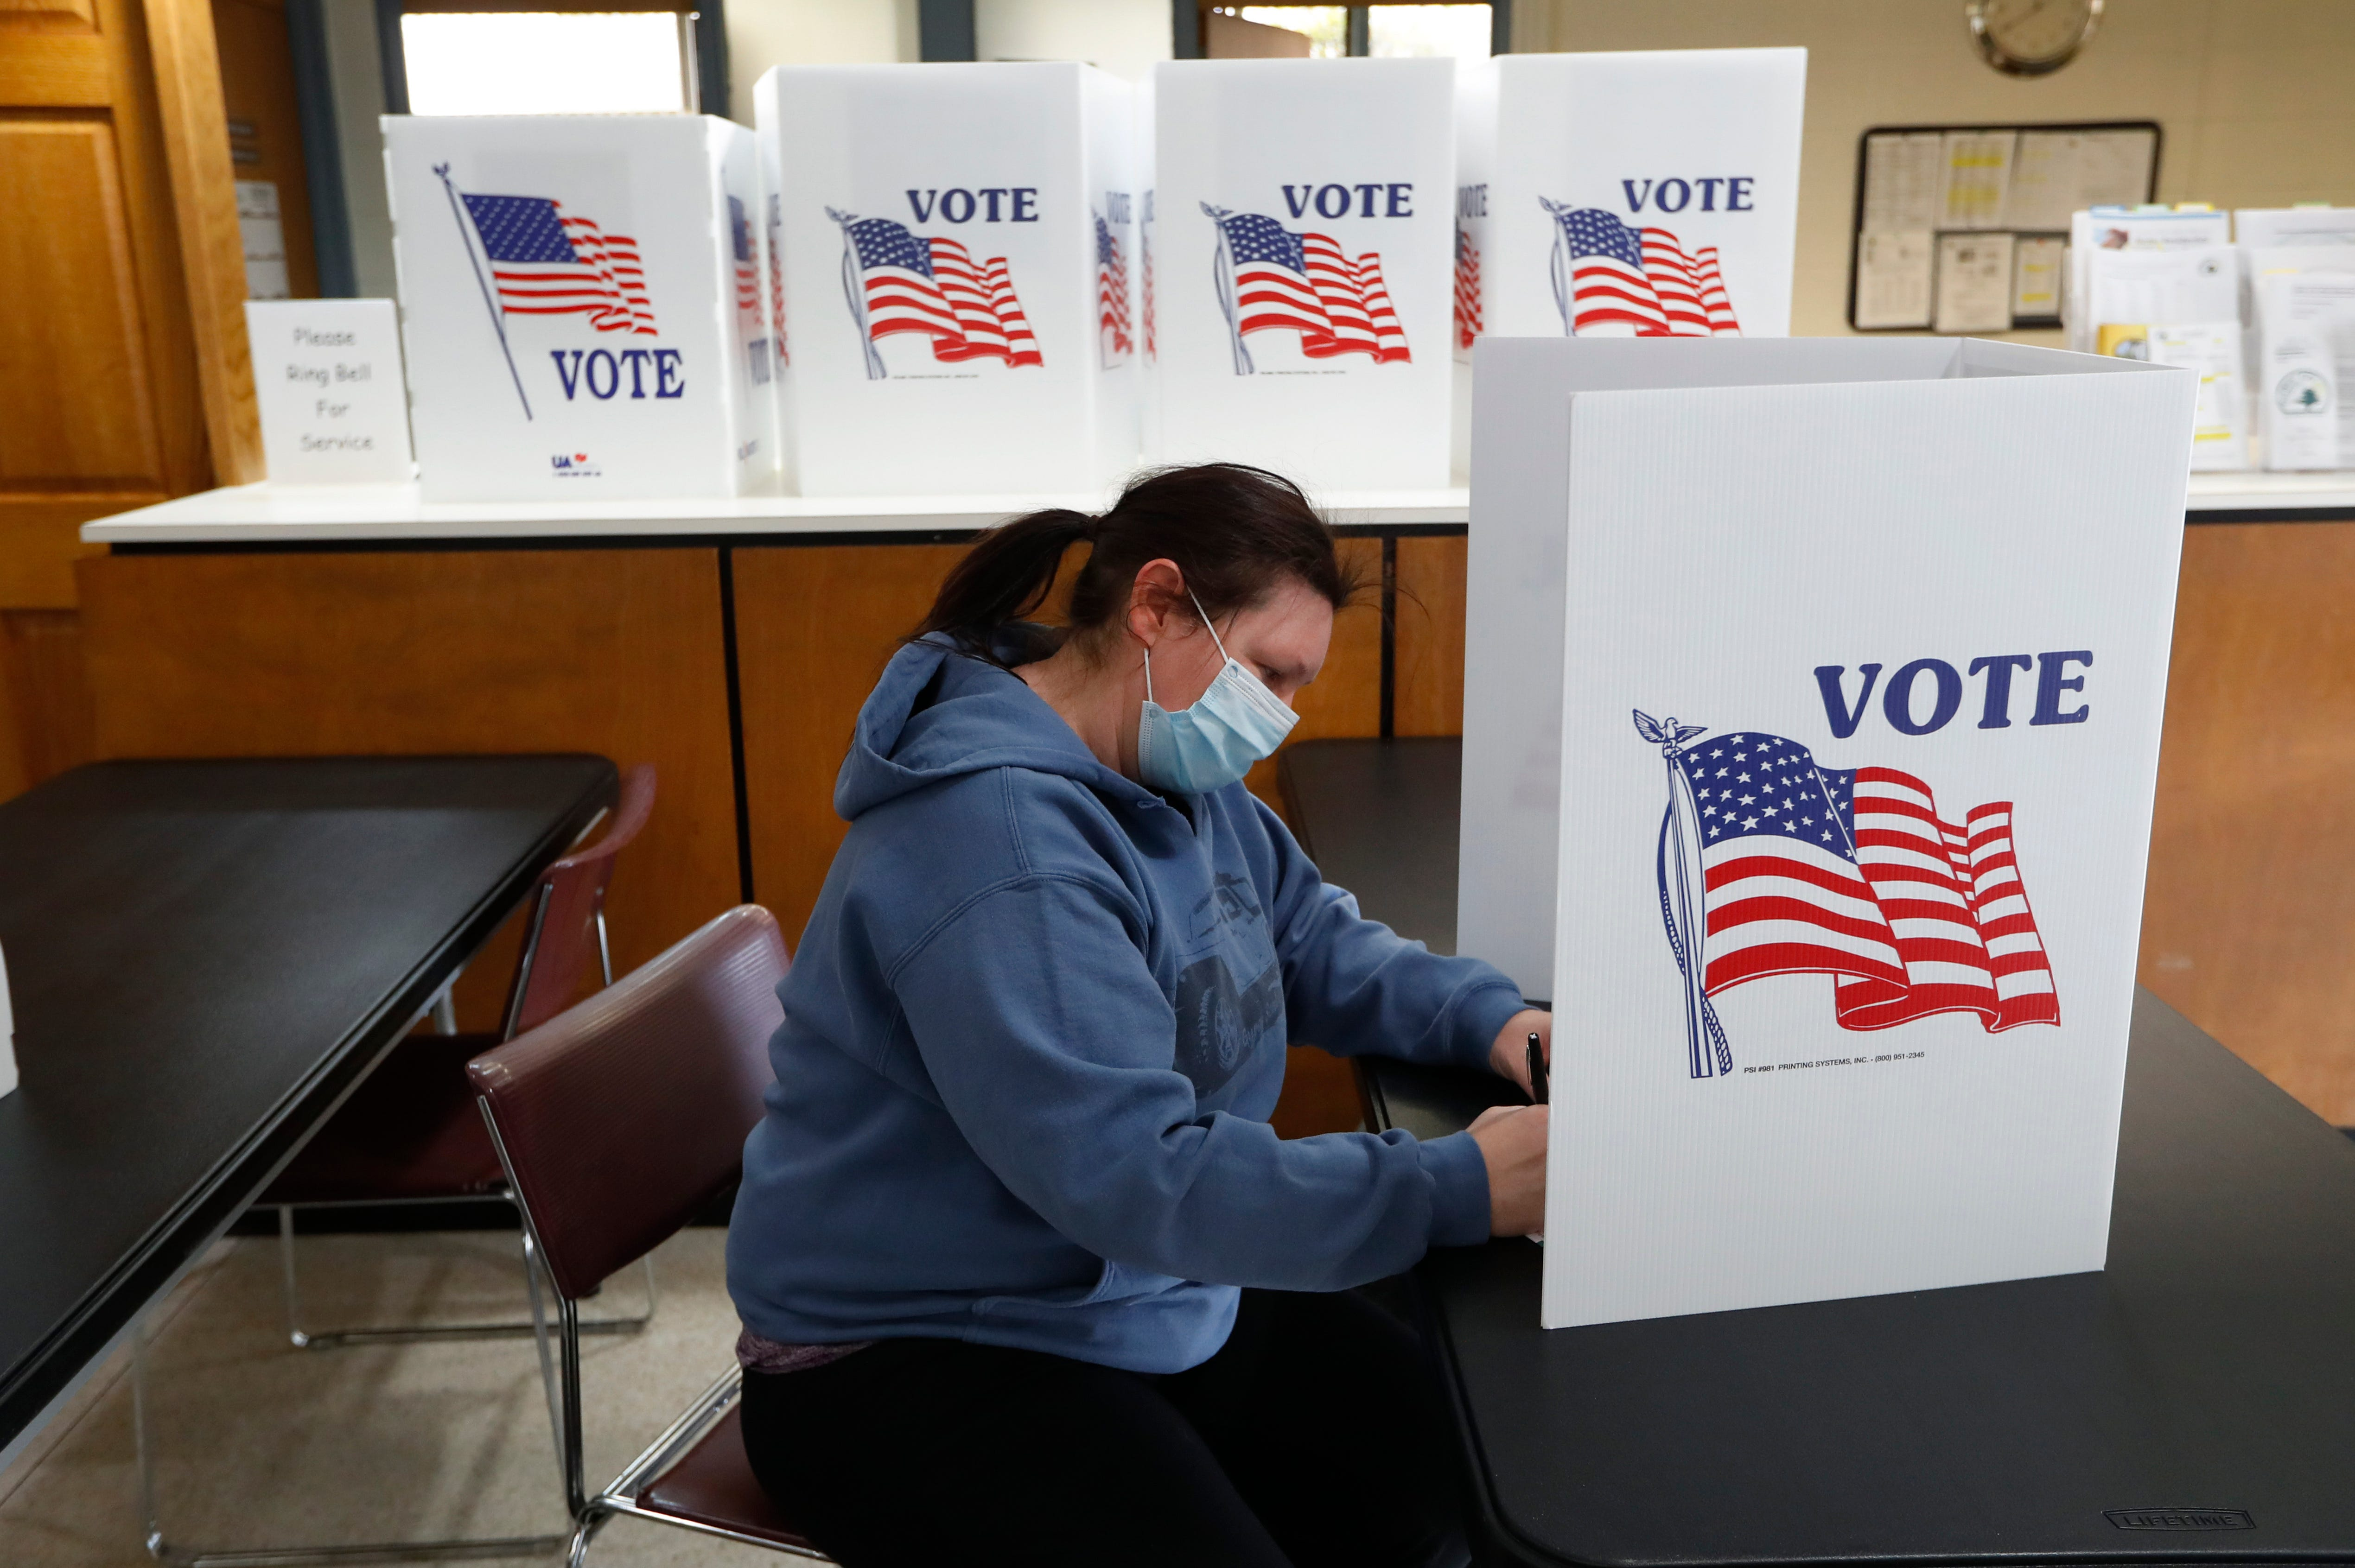 Absentee voting remains popular in Michigan's largest cities as primary nears